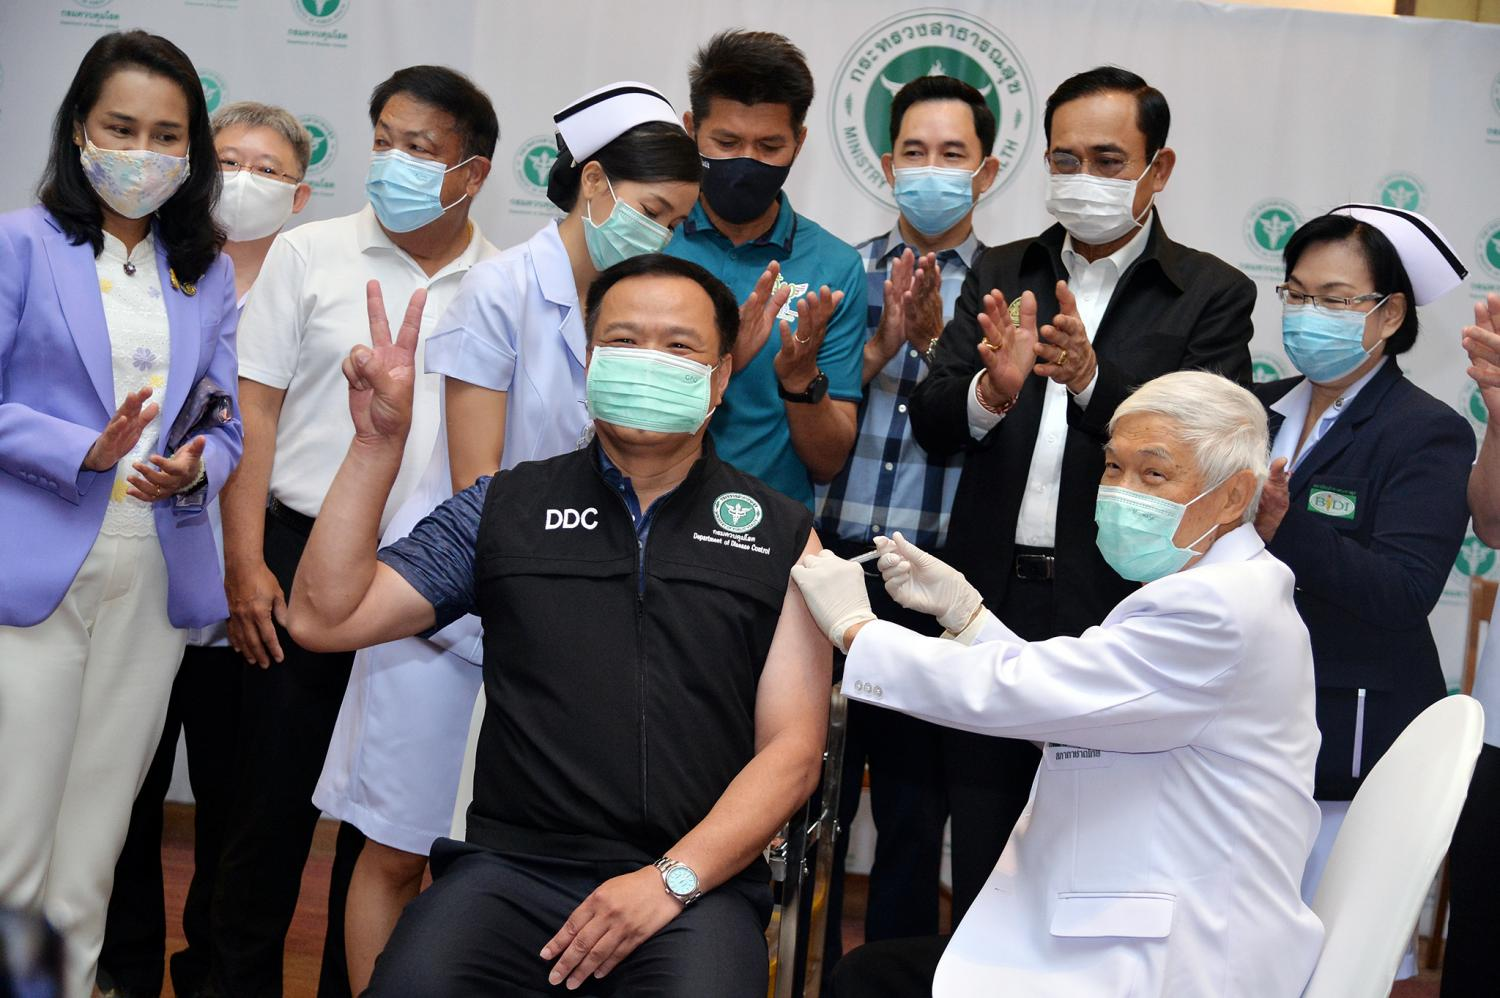 Virologist Dr Yong Poovorawan, front right, administers a Covid jab to Public Health Minister Anutin Charnvirakul, front left, on Feb 28. Dr Yong also advised the government to pioneer the mixing of Sinovac and AstraZeneca vaccines.(Government House Photo)